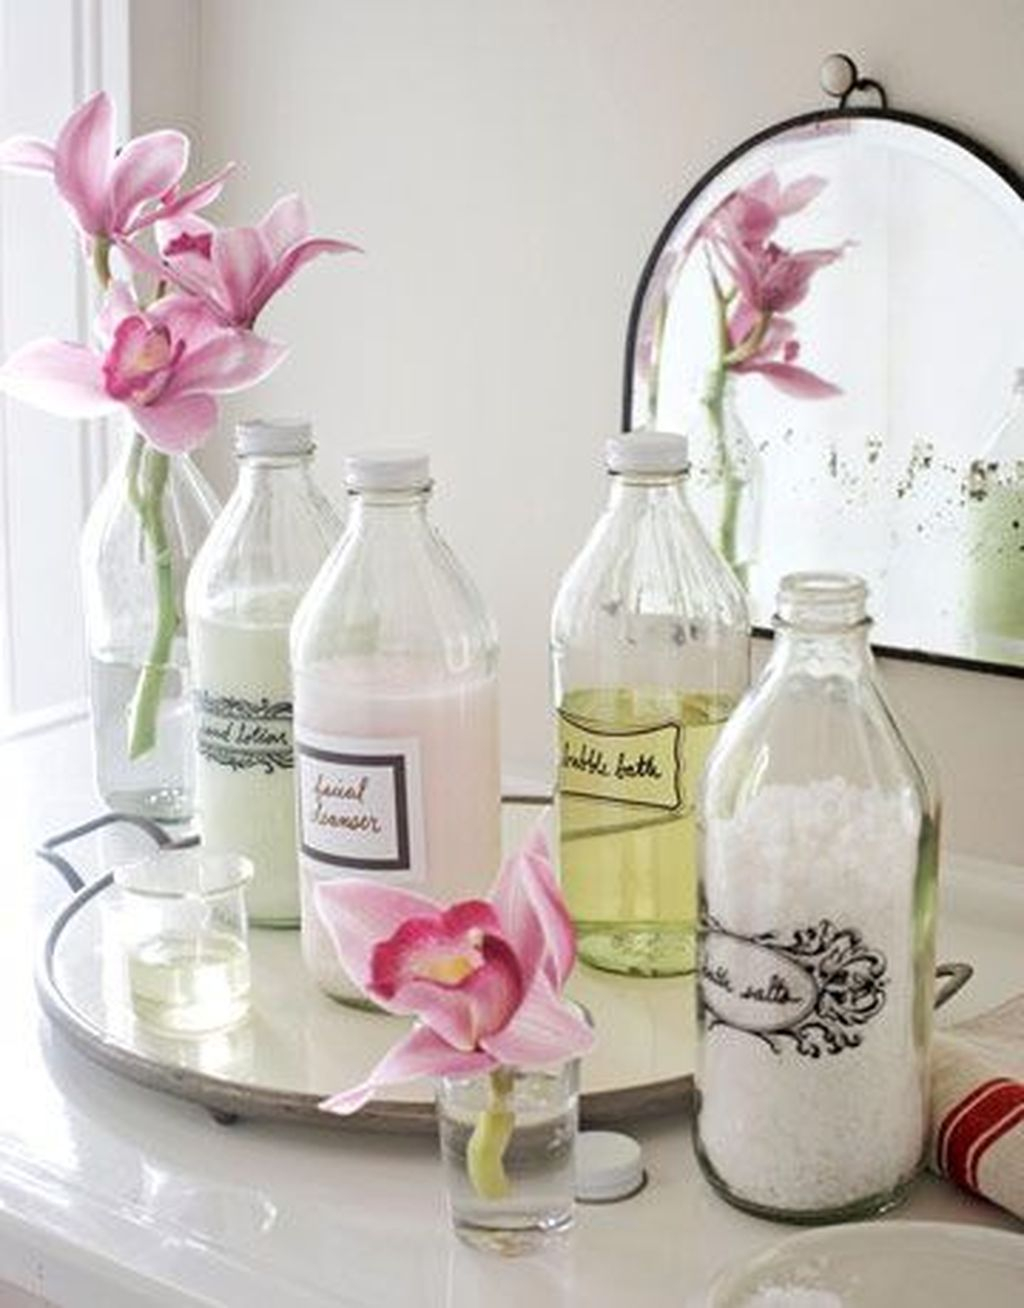 Affordable Diy Organization Bathroom Design Ideas For Bottle And Towel Labels33